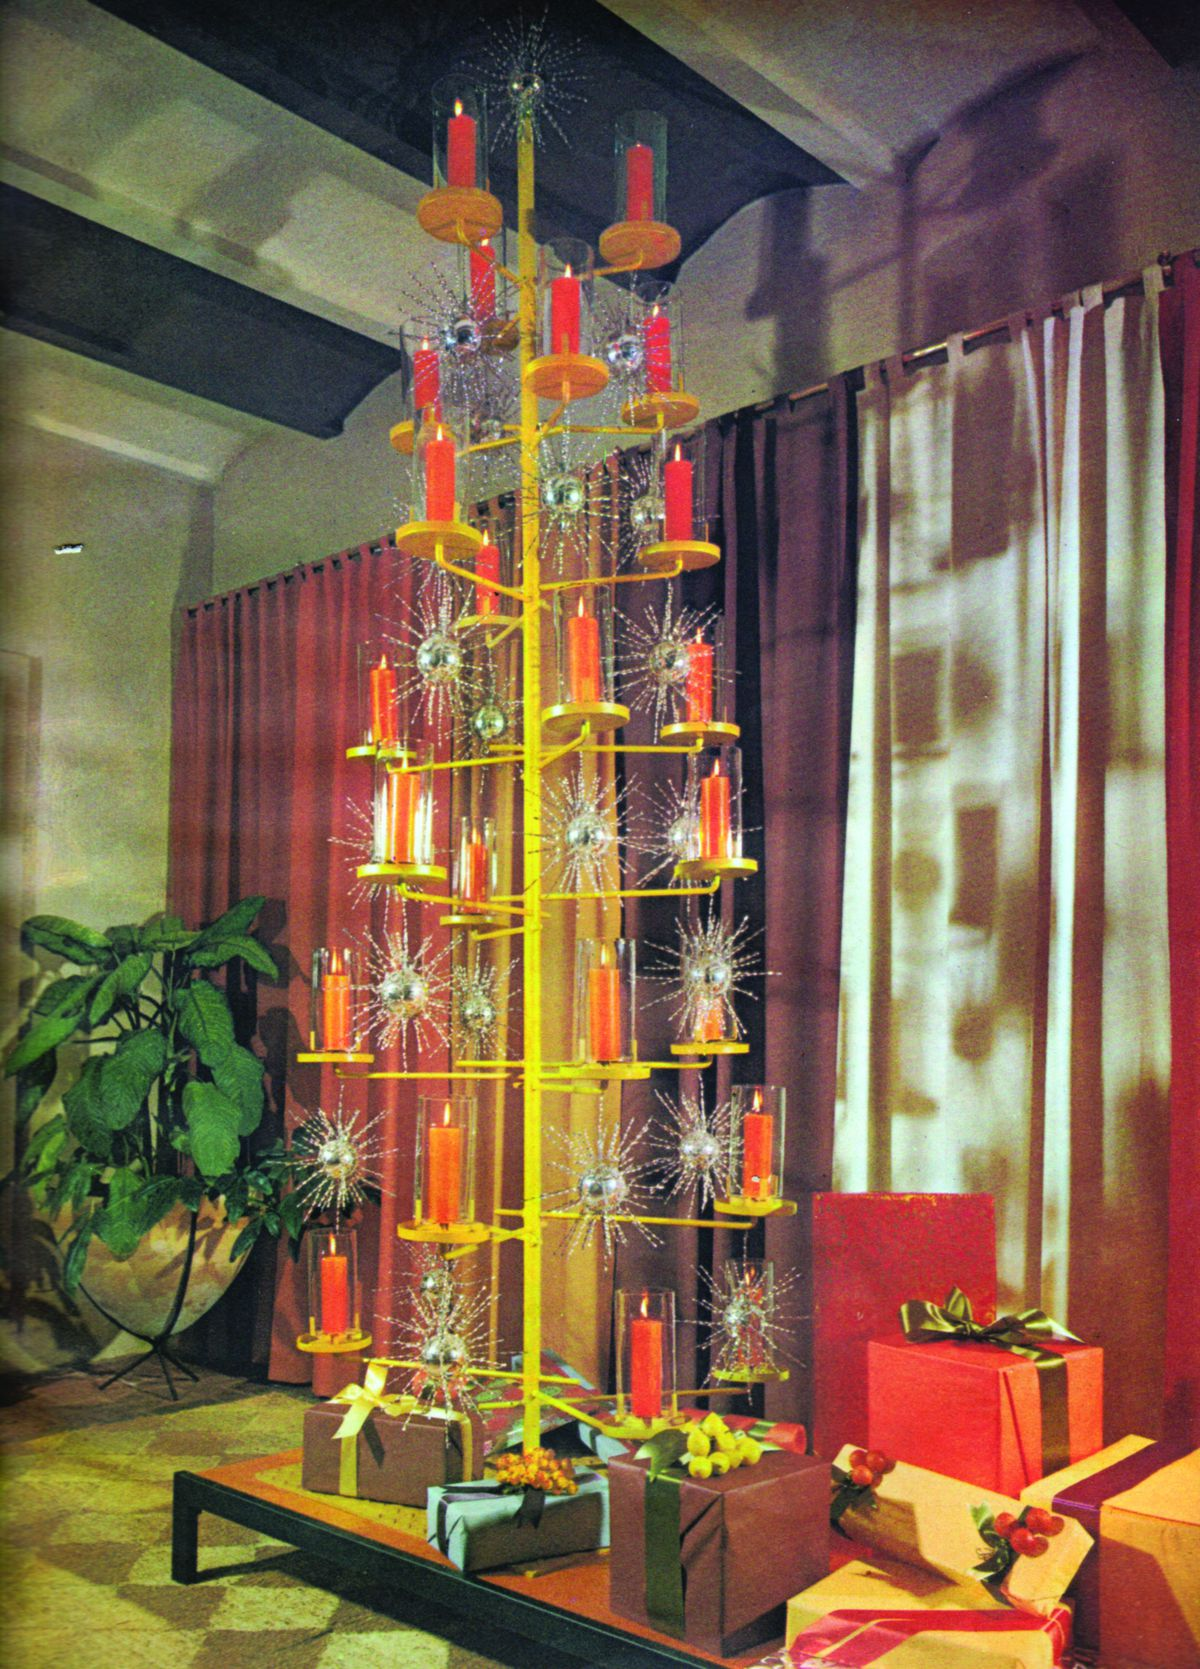 House Beautiful, December 1961 Reprinted With Permission Of Hearst Communications,